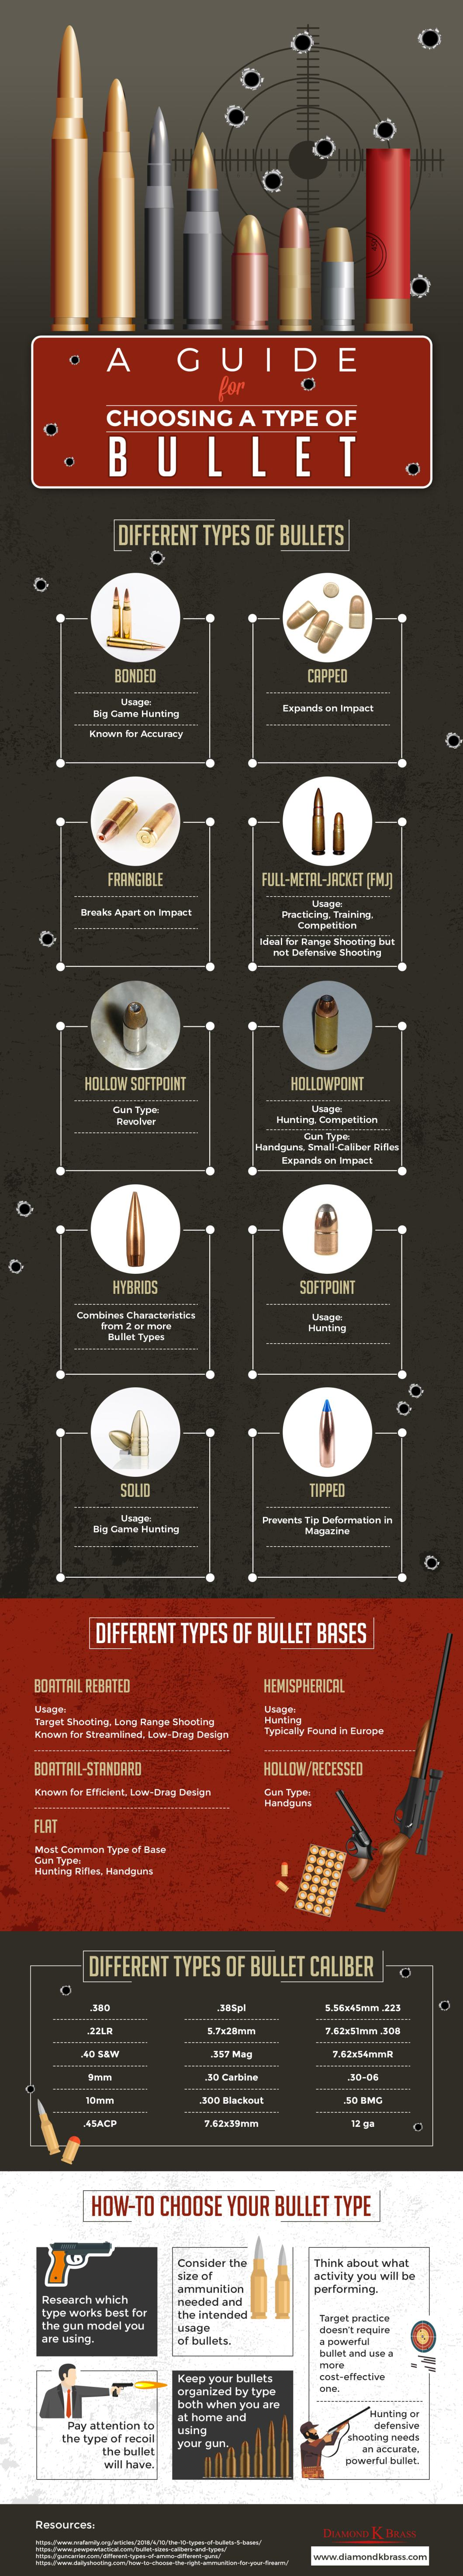 How Do You Choose the Correct Bullet: A Concise Guide - Infographic